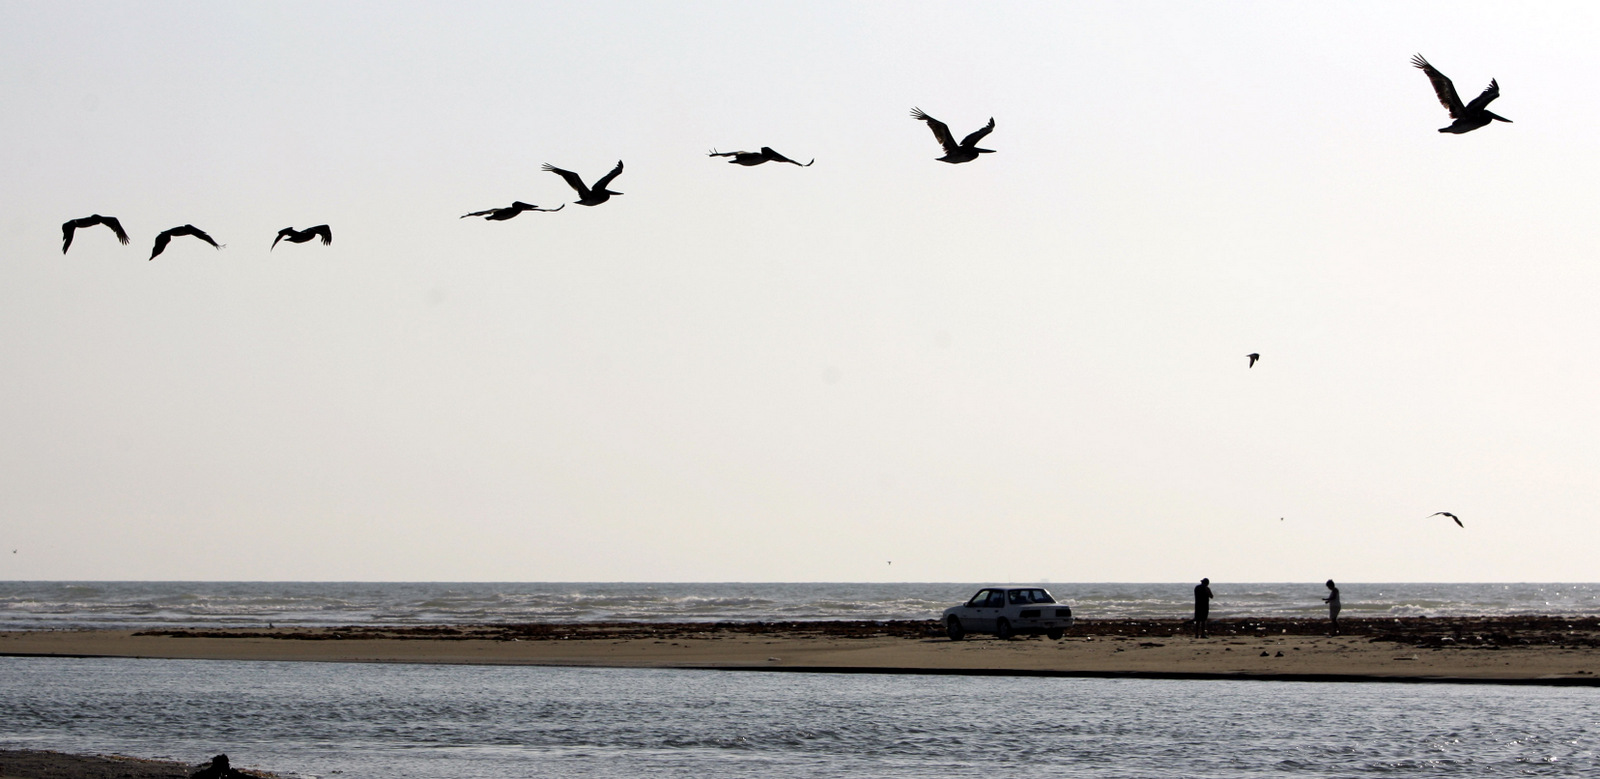 Pelicans pass over Boca Chica, Texas, where the Rio Grande meets the Gulf of Mexico. Wildlife enthusiasts fear the Santa Ana National Wildlife Refuge will be ruined by the fences and adjacent roads the U.S. government plans to erect along the Mexican border to keep out illegal immigrants and smugglers. (AP Photo/Eric Gay)